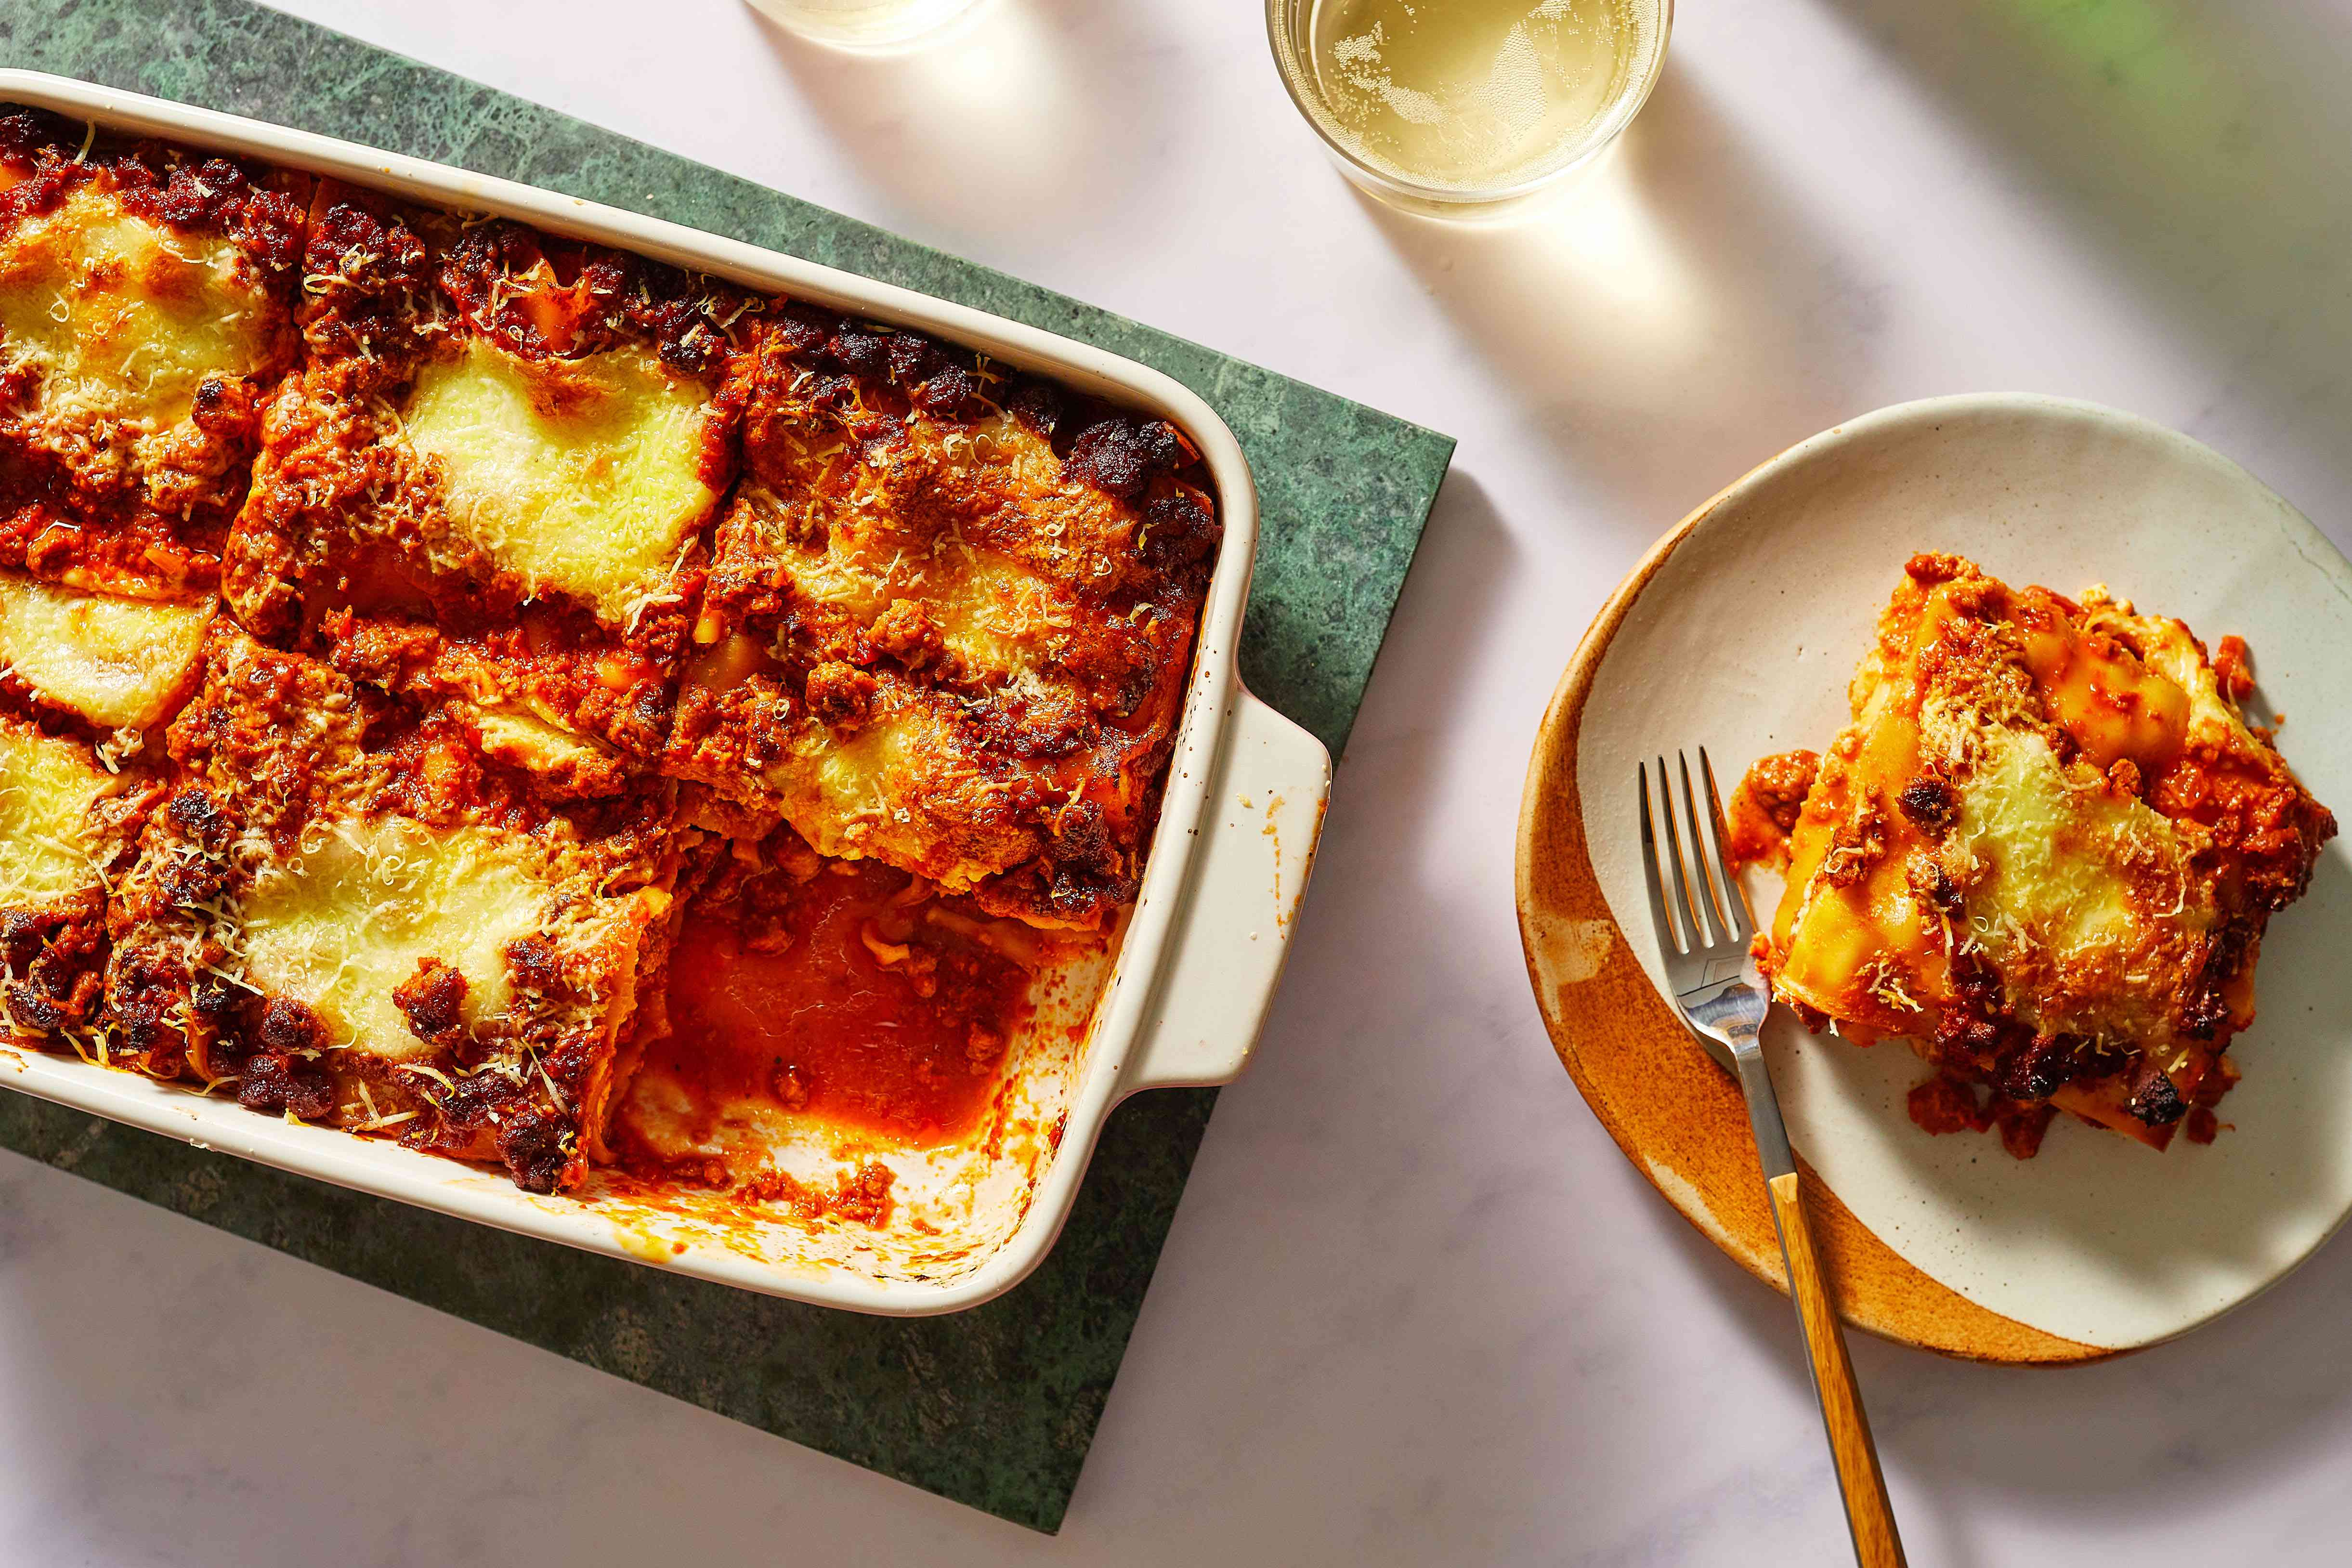 Best Classic Lasagna in a baking pan, on a plate